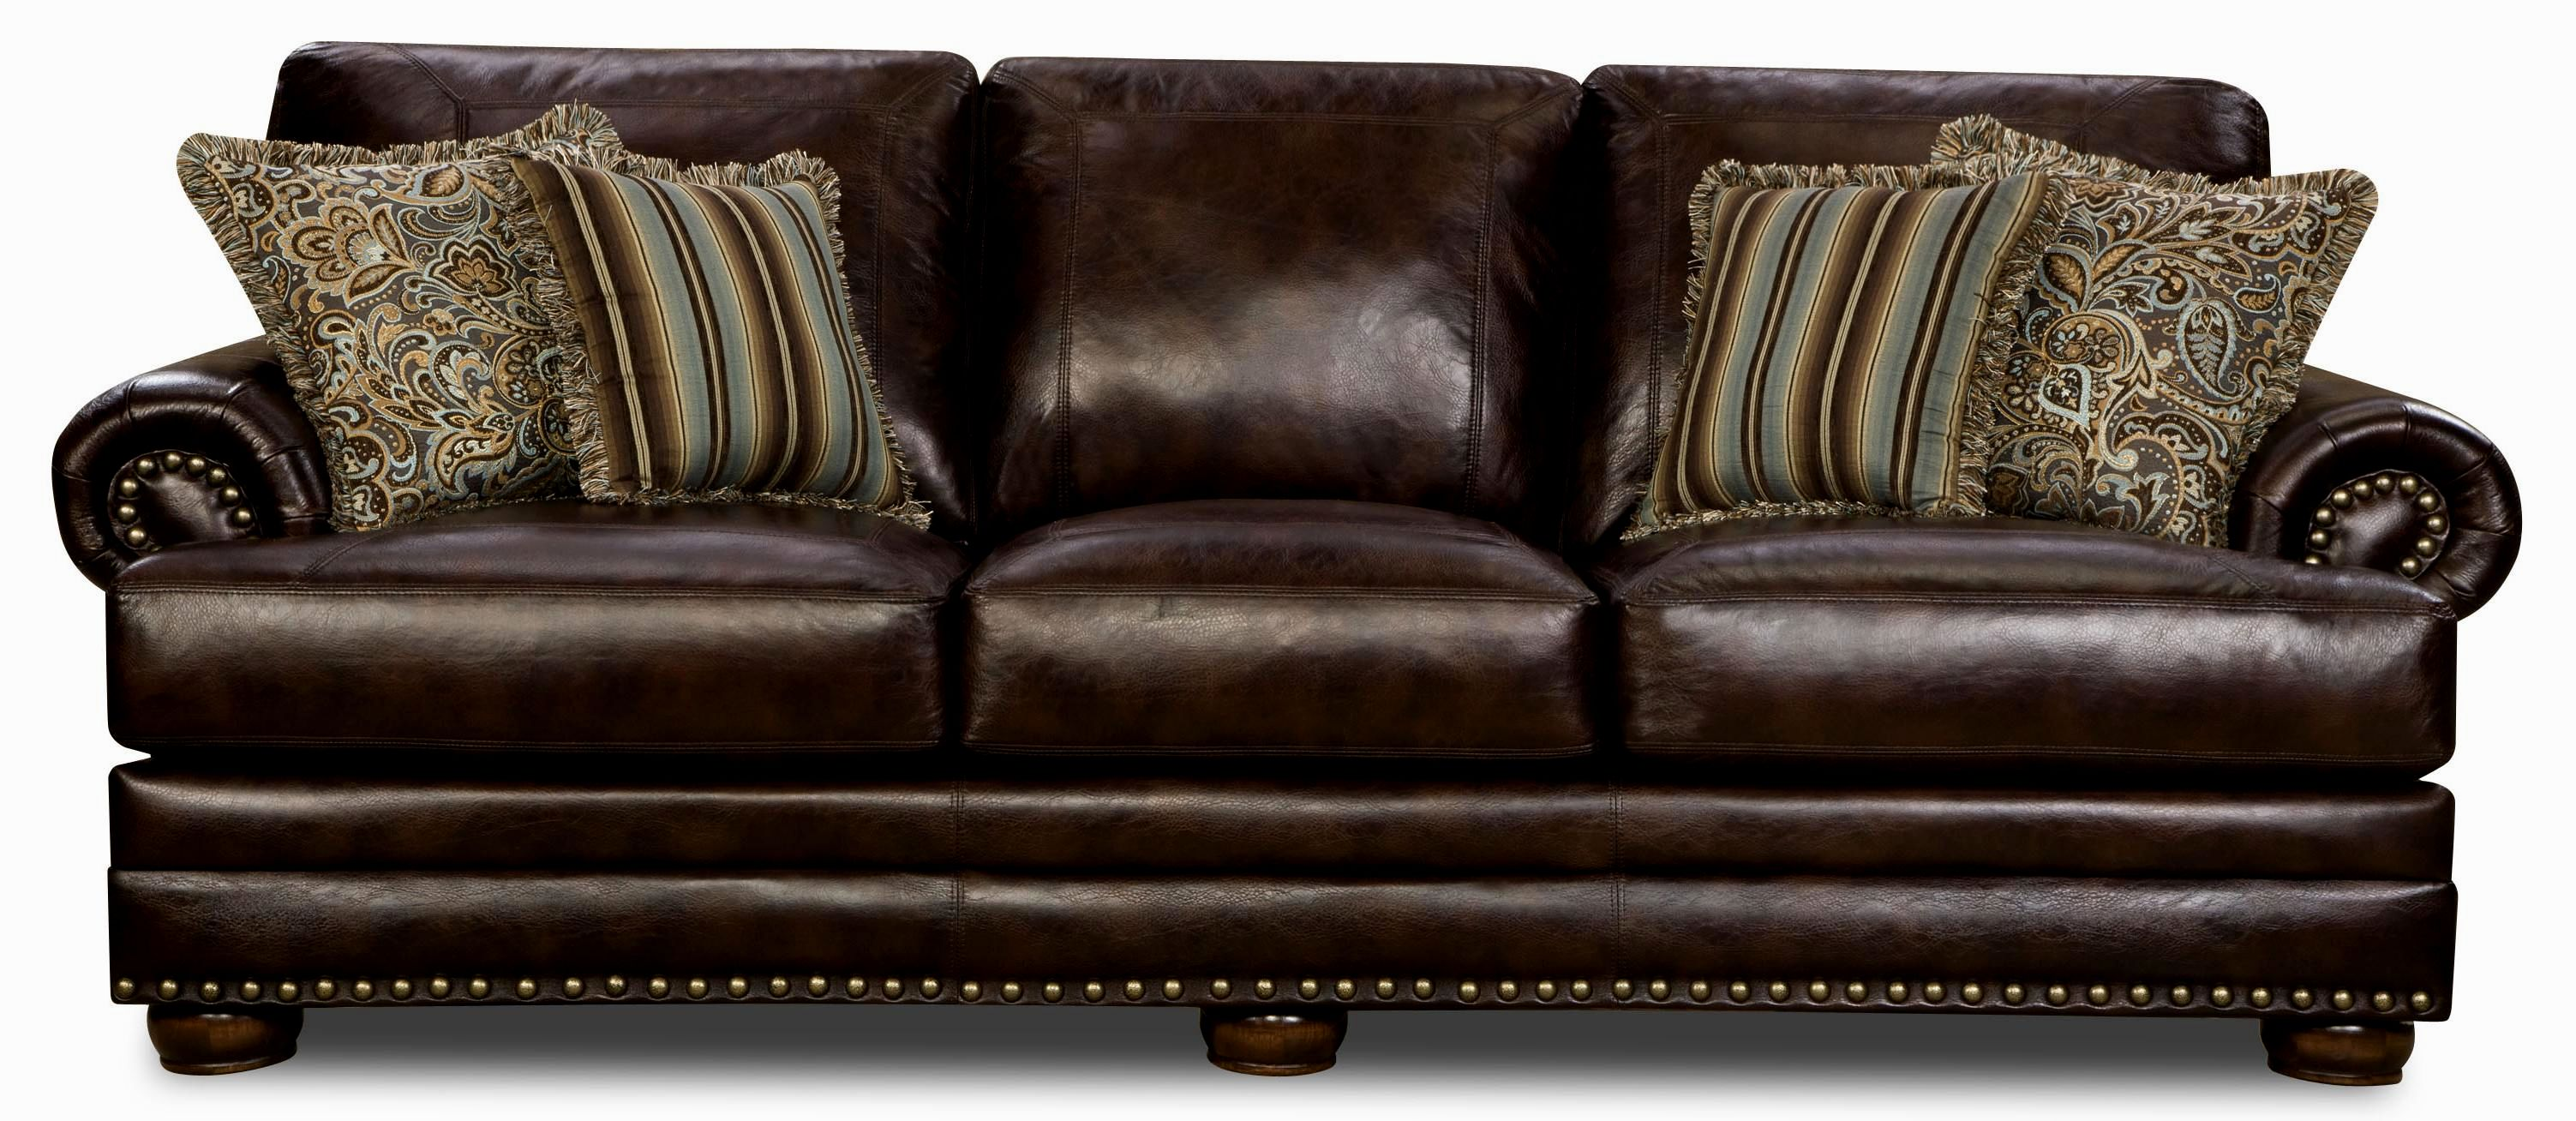 latest american leather sleeper sofa reviews photo-Sensational American Leather Sleeper sofa Reviews Layout